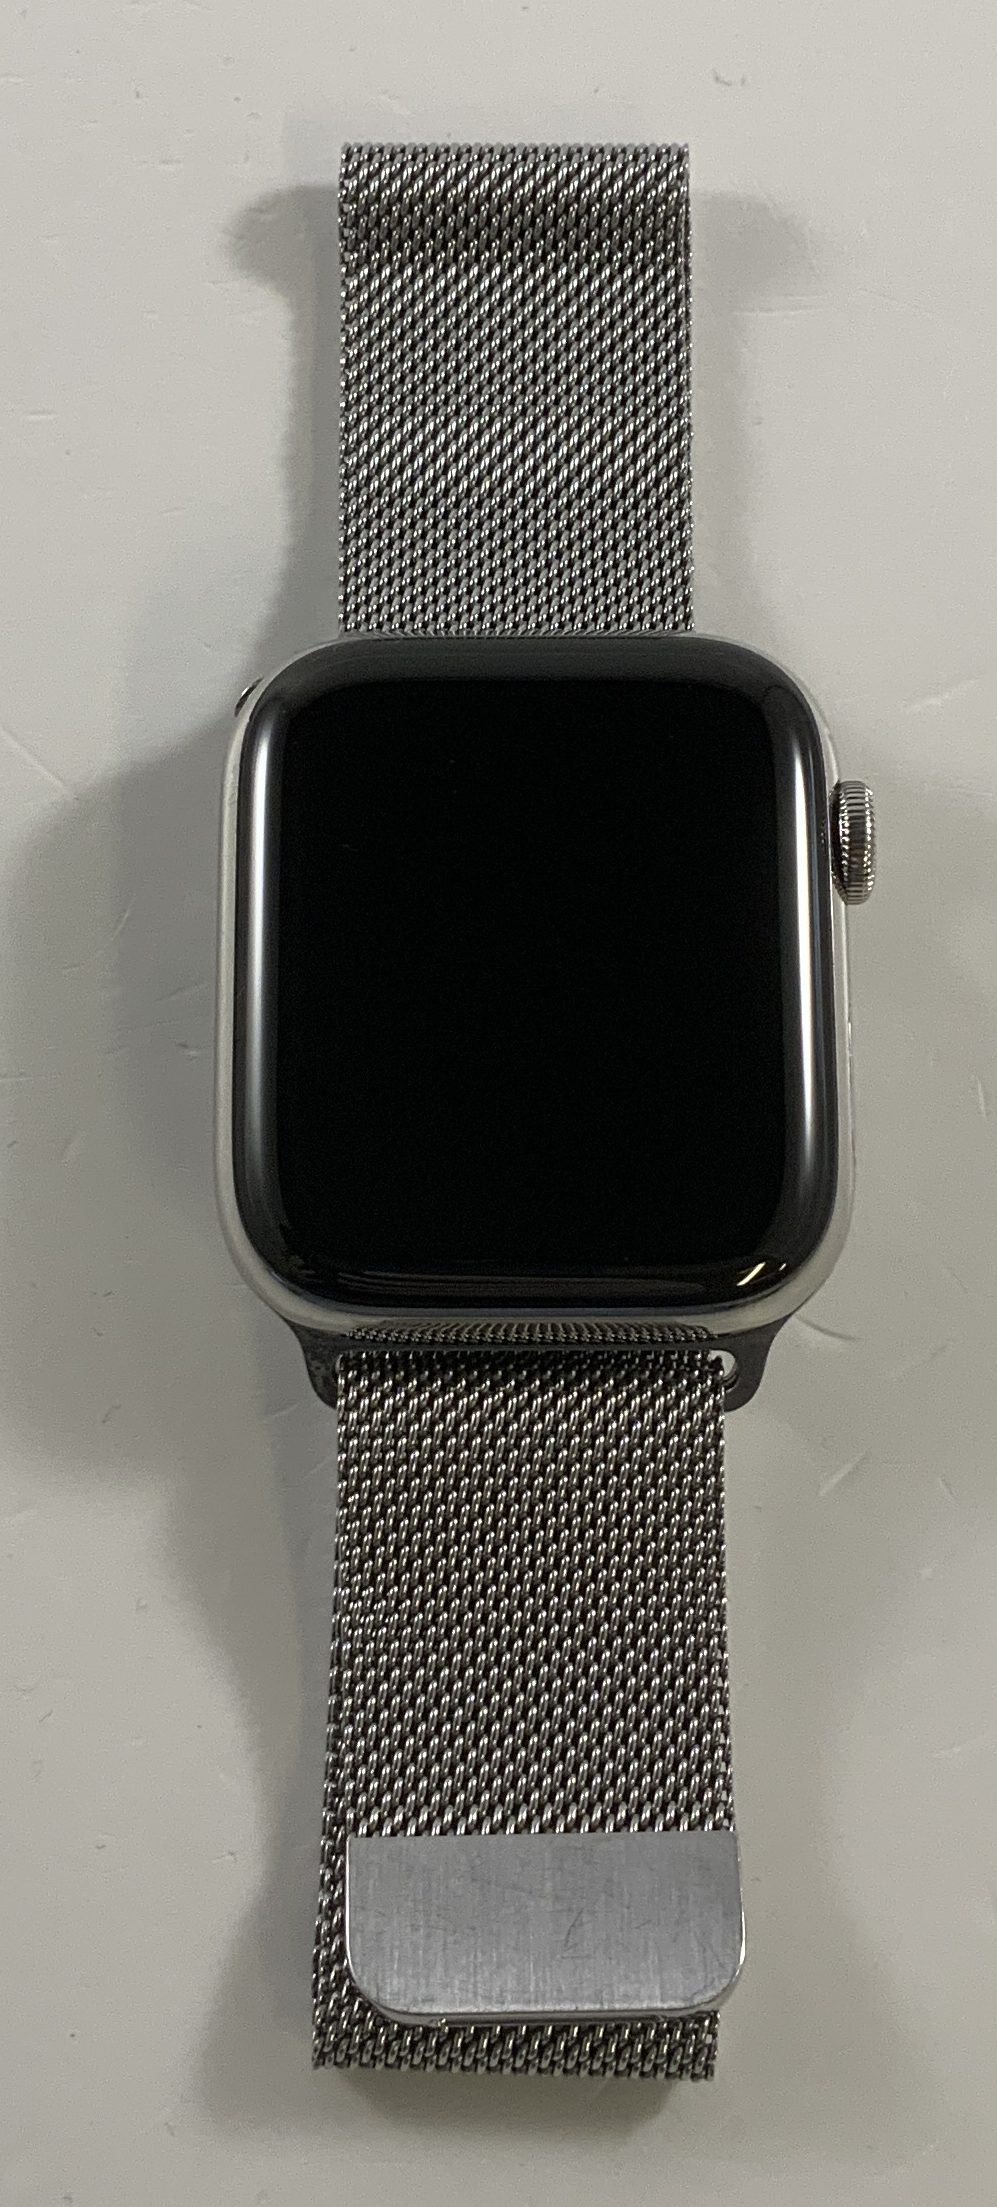 Watch Series 5 Steel Cellular (44mm), Silver, bild 3